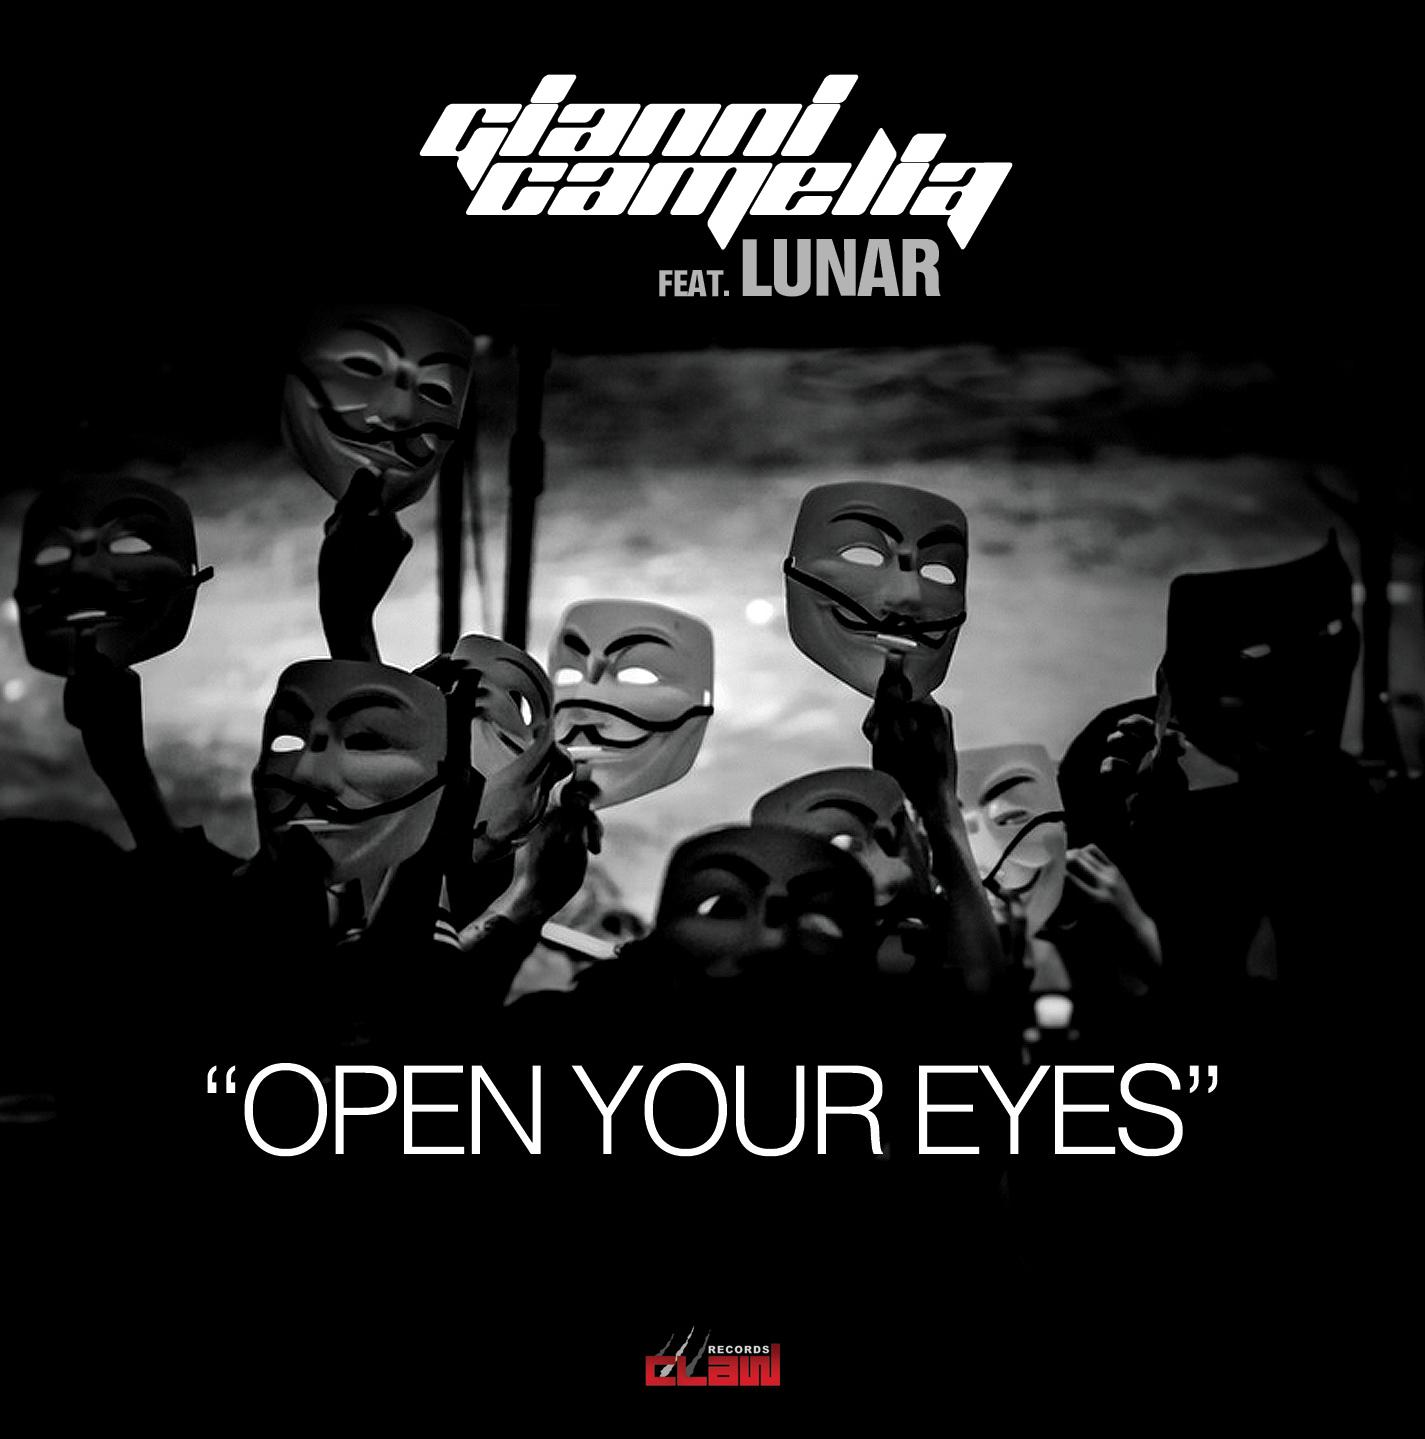 Gianni Camelia ft. Lunar Open Your Eyes Radio Edit